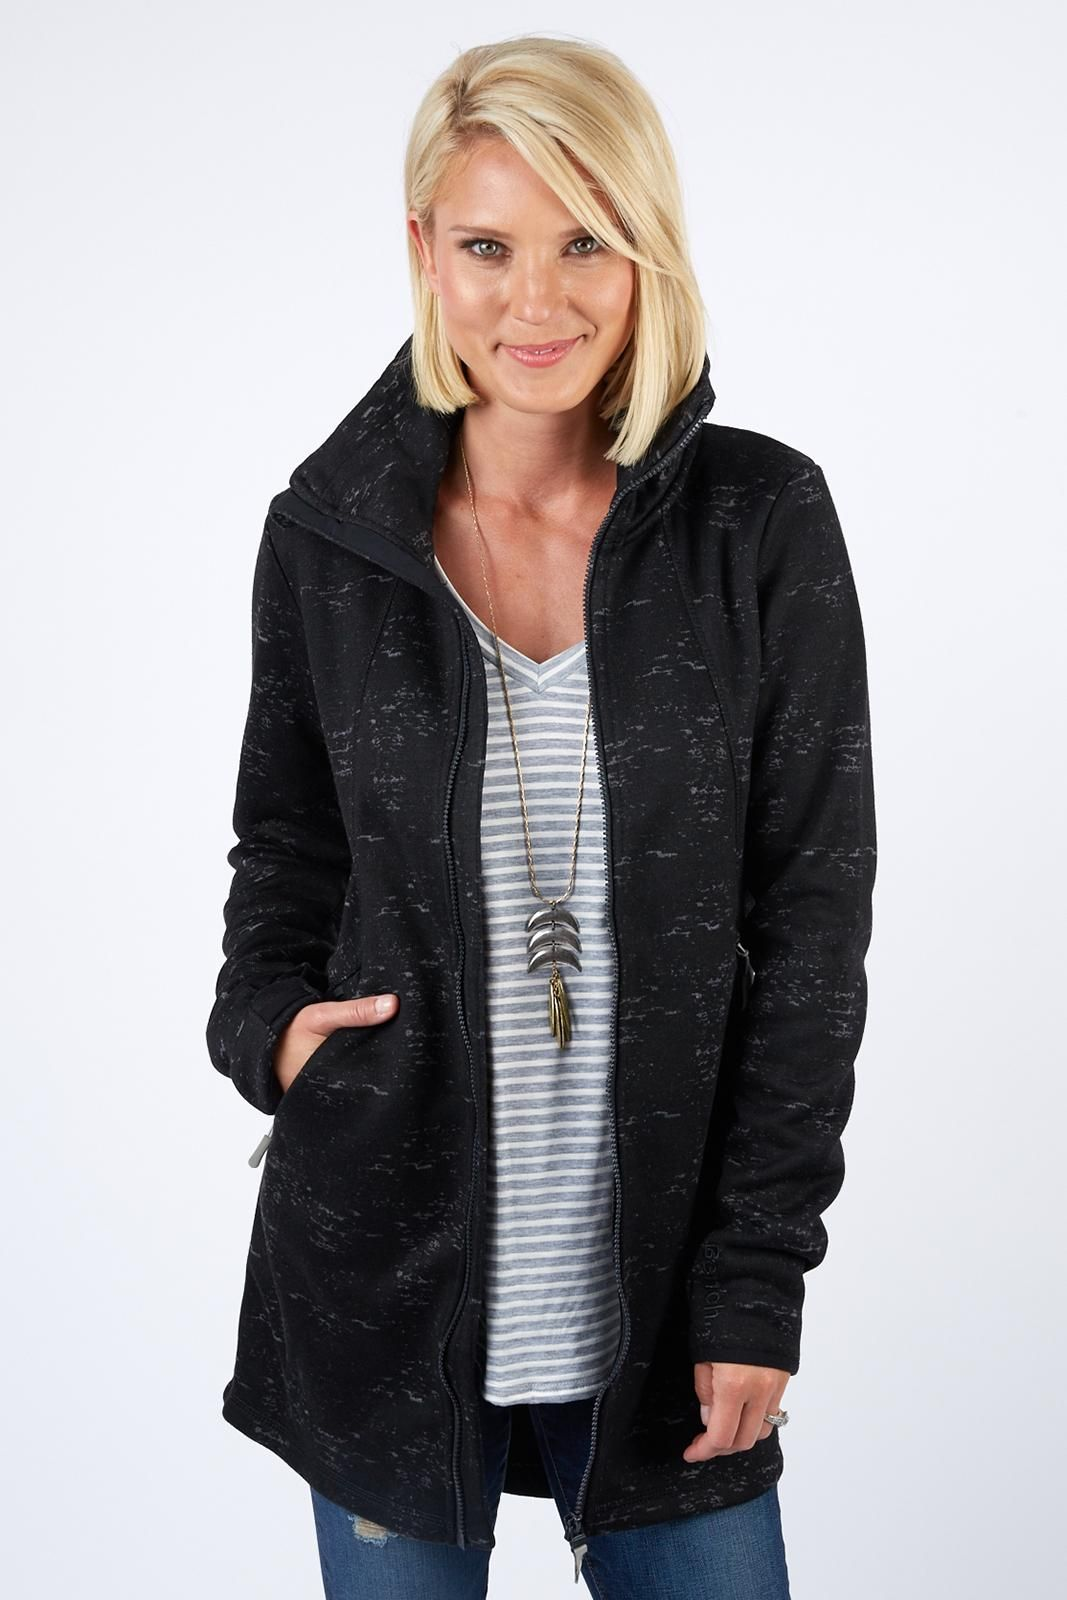 ead6e1b9522 ... contemporary fashion and styling company for women. Shop the Go Getter  Jacket  Evereve